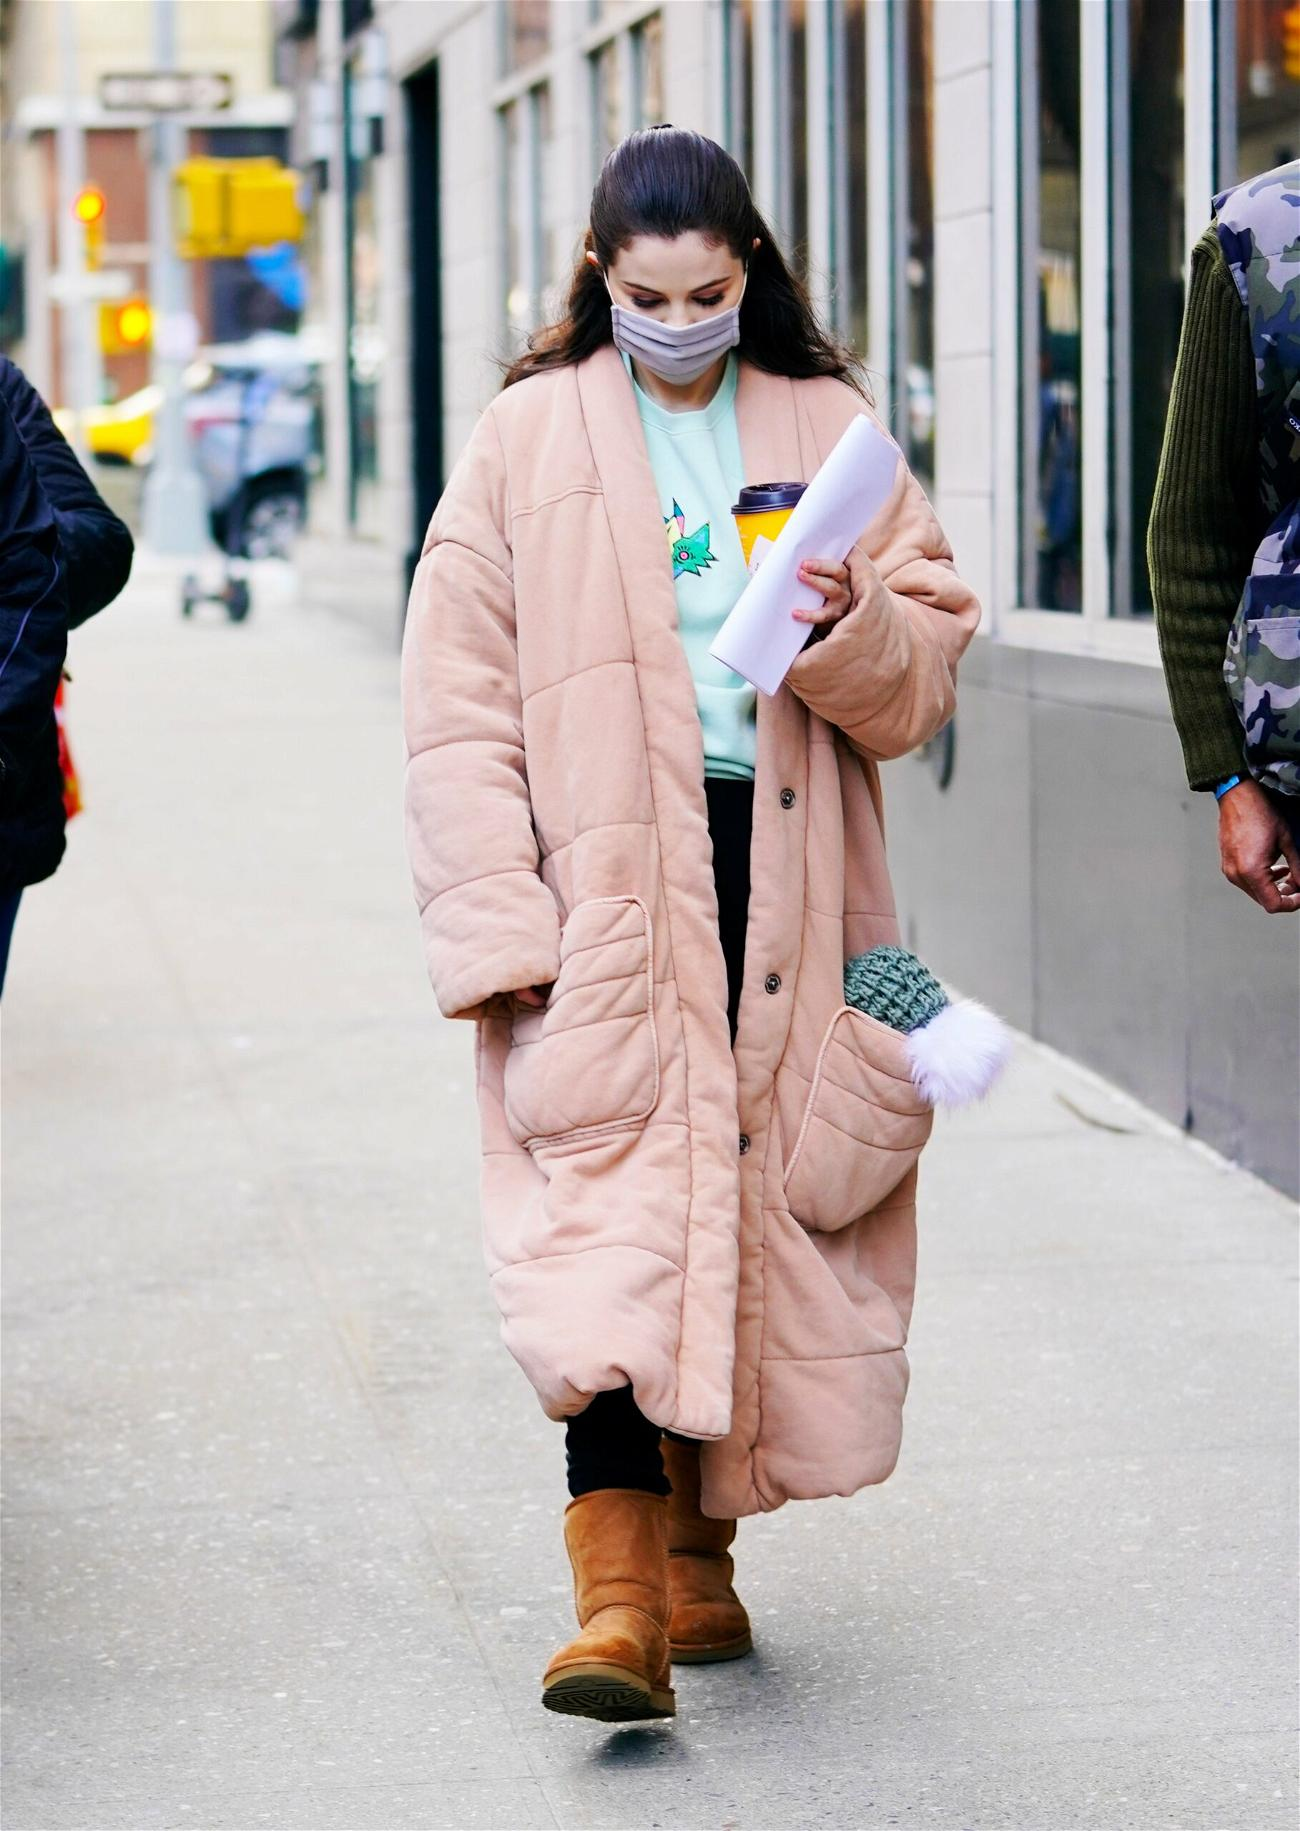 Selena Gomez on location for apos Only Murderers in the Building apos in New York